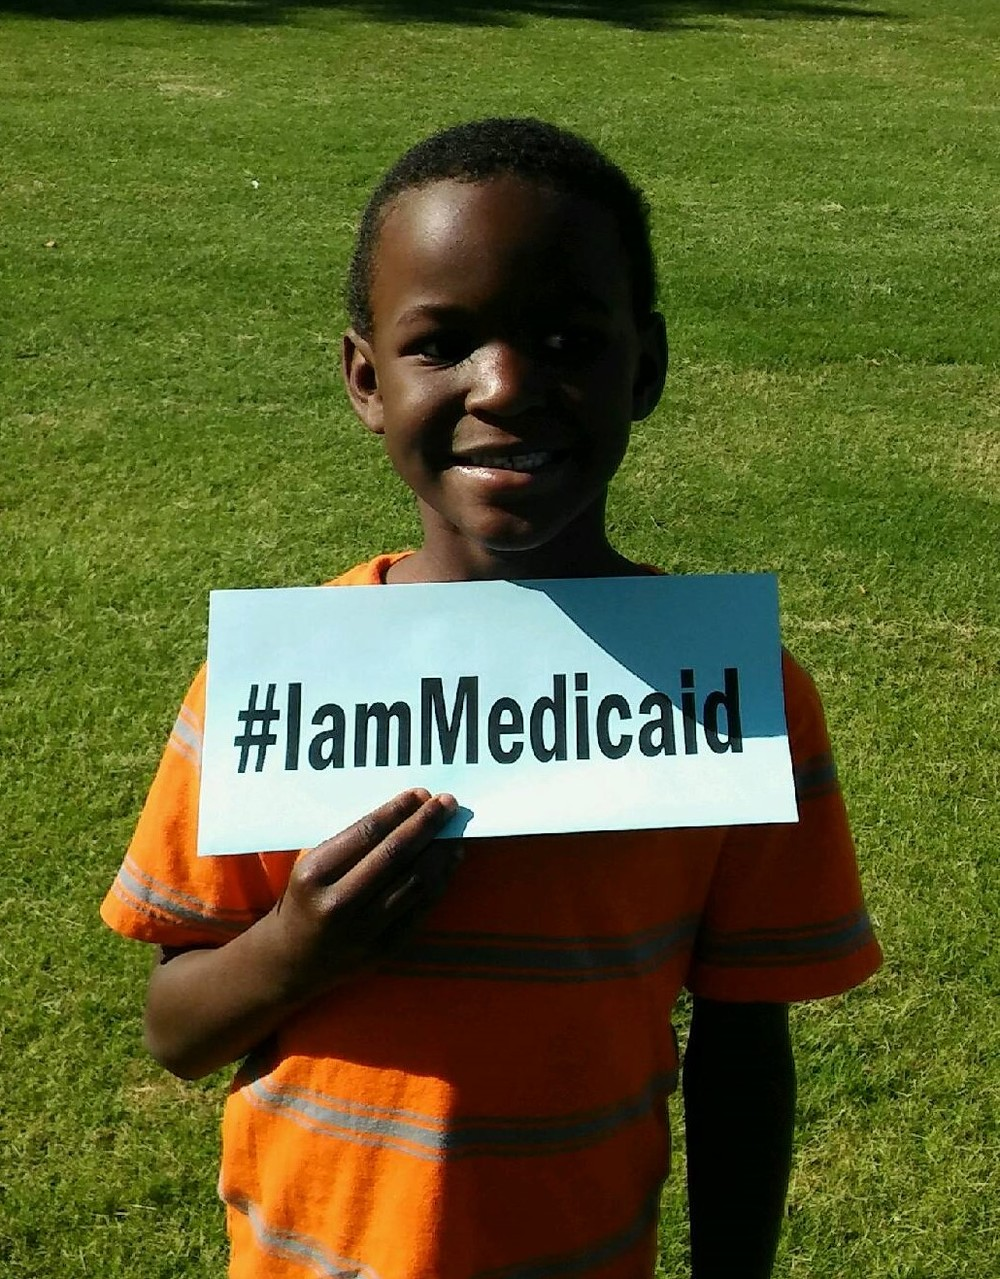 My brother and I depend on Medicaid to help keep us healthy. We can go to the doctor when we are sick. I am 6 and he is 4 and we are Medicaid. #IamMedicaid